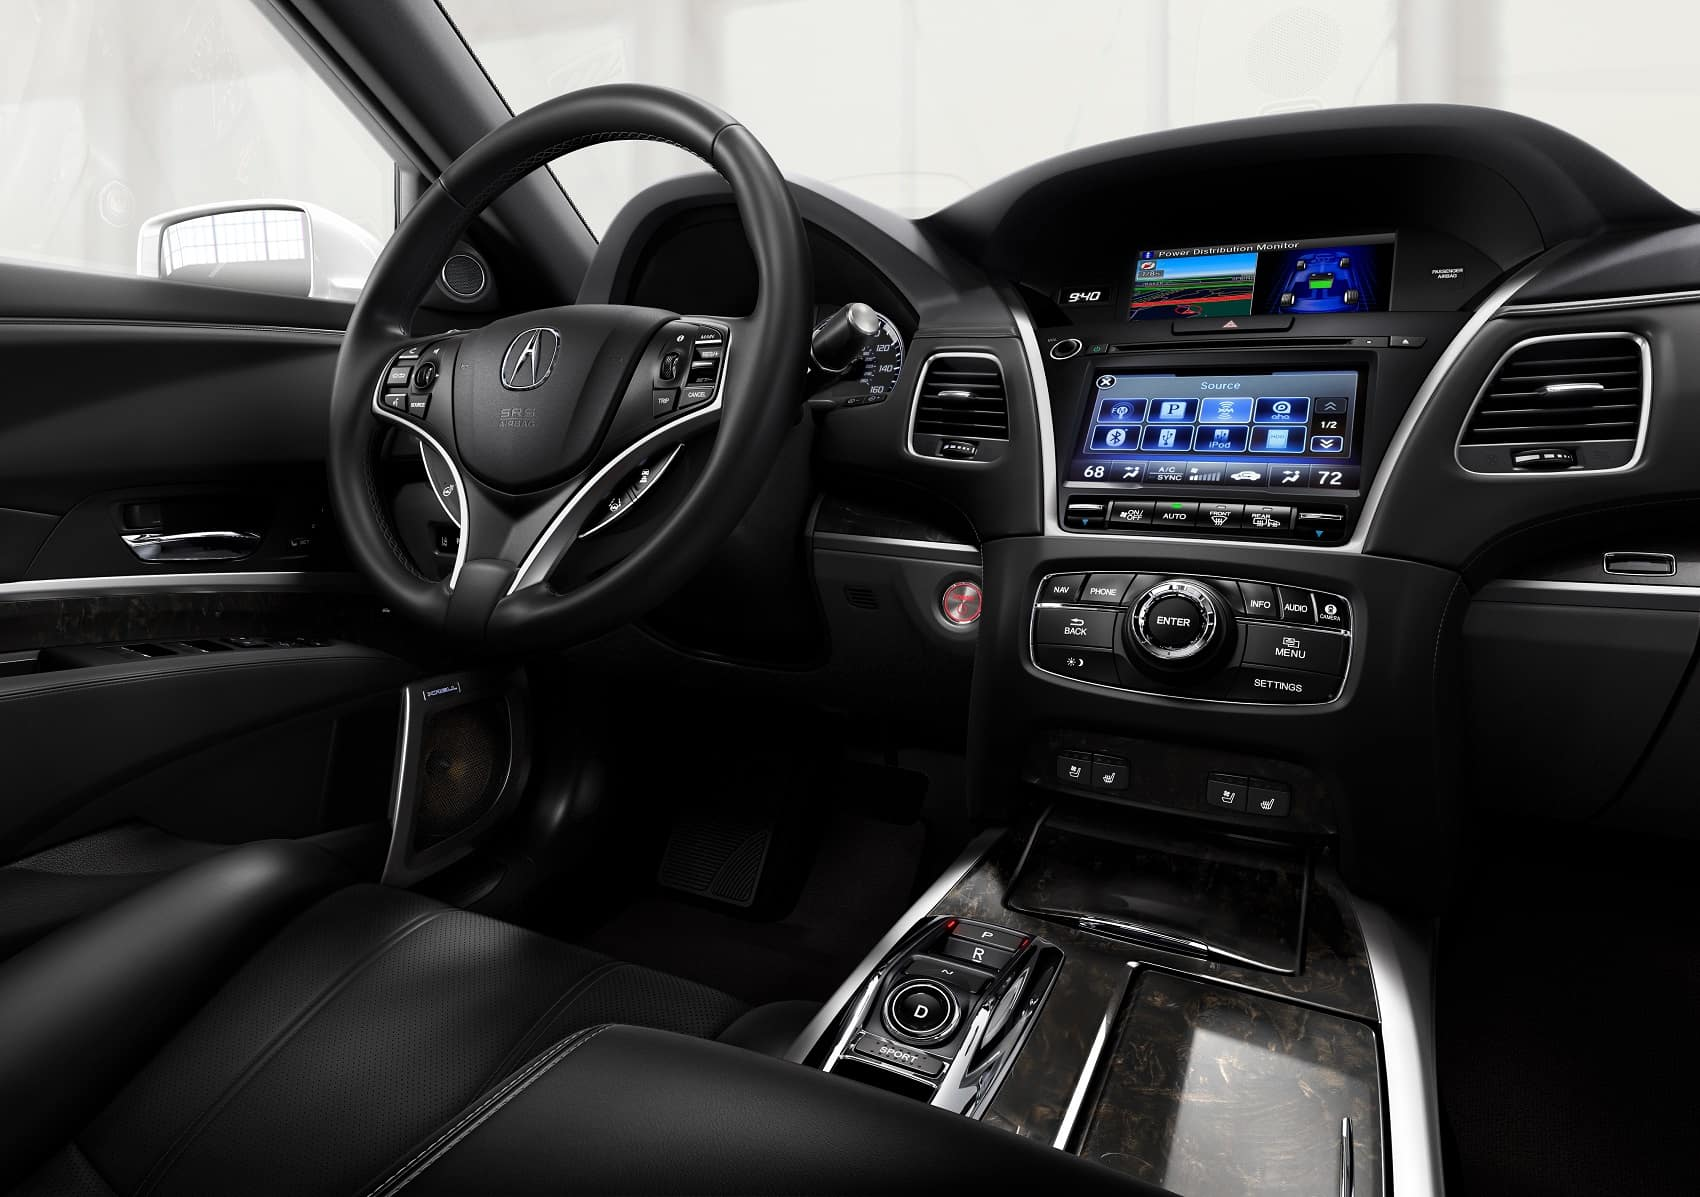 2019 Acura RLX Interior Technology